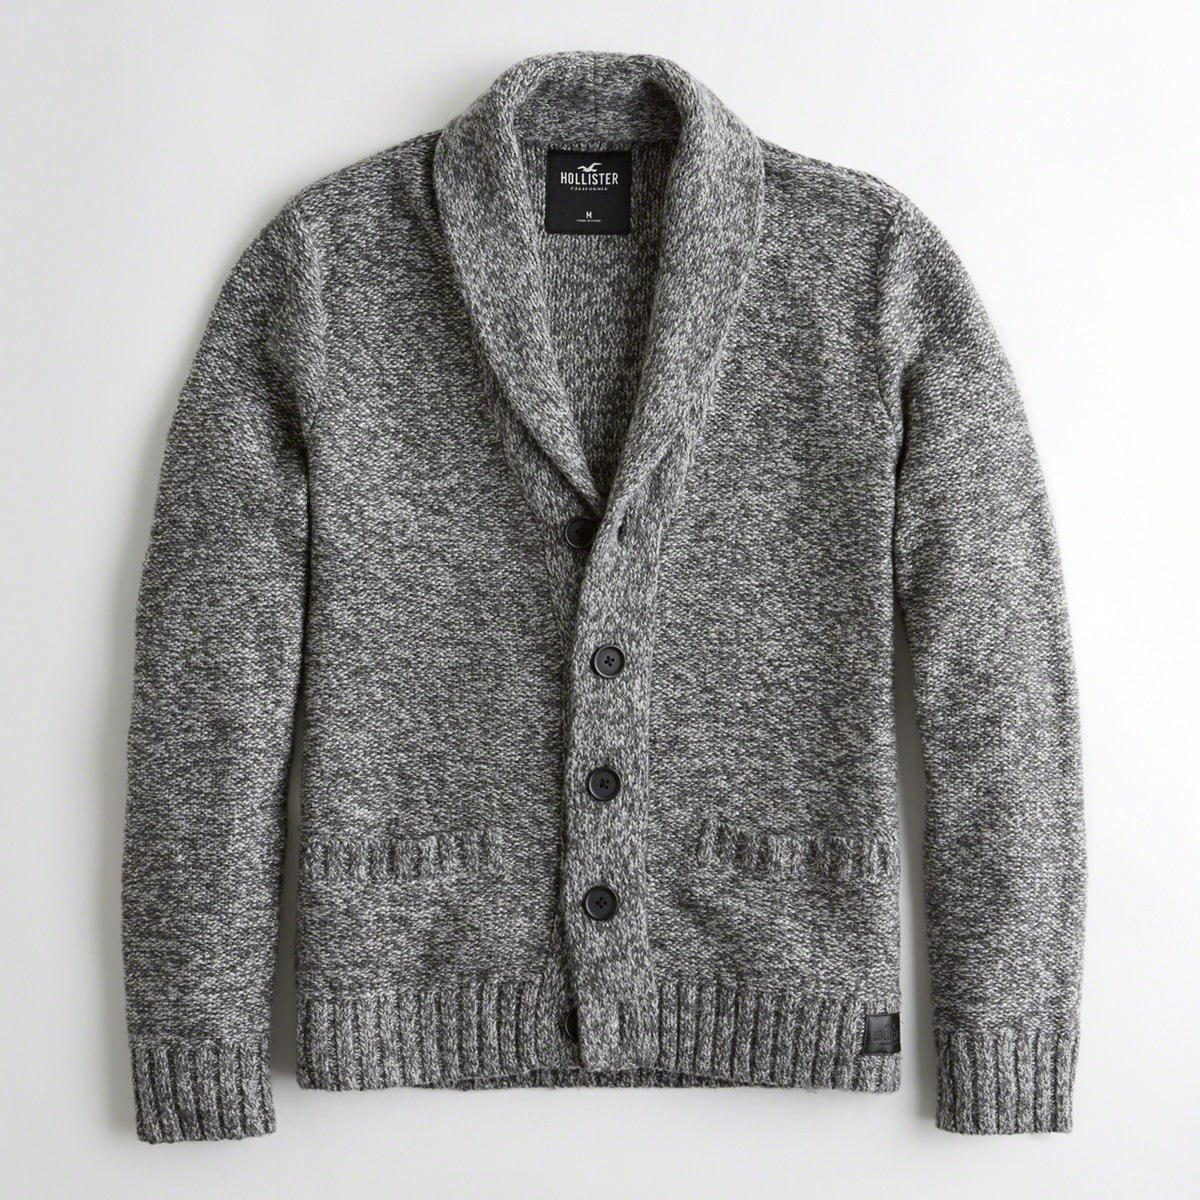 Lyst - Hollister Guys Shawl Cardigan From Hollister in Gray for Men 4762f12e2